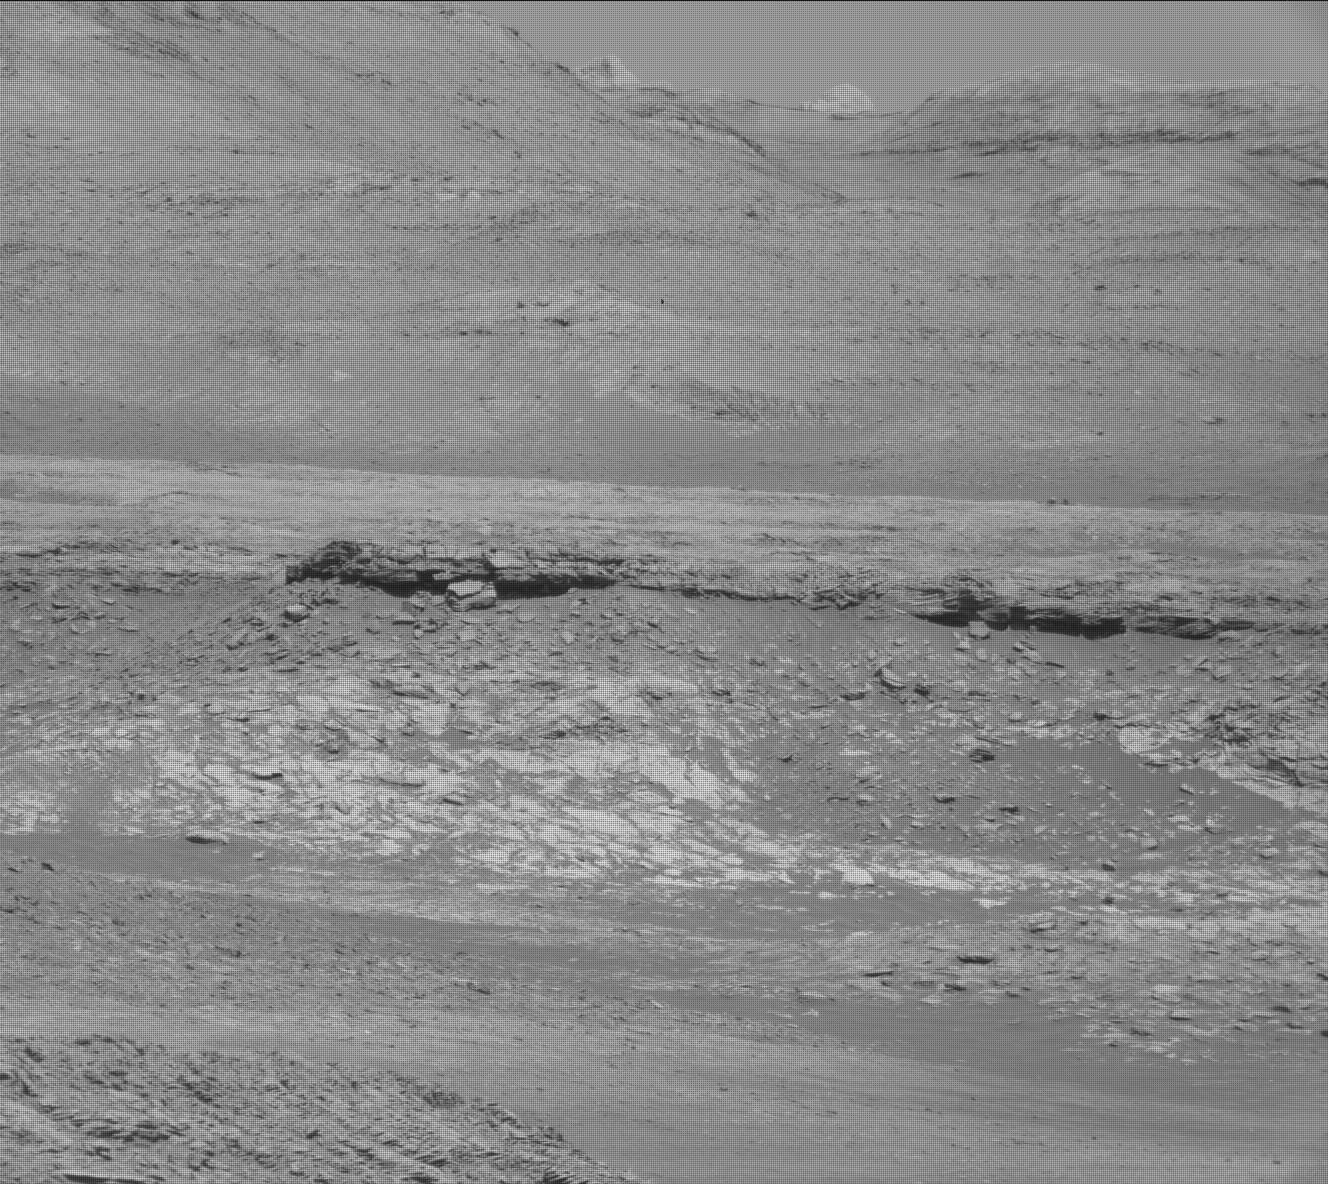 Nasa's Mars rover Curiosity acquired this image using its Mast Camera (Mastcam) on Sol 1984